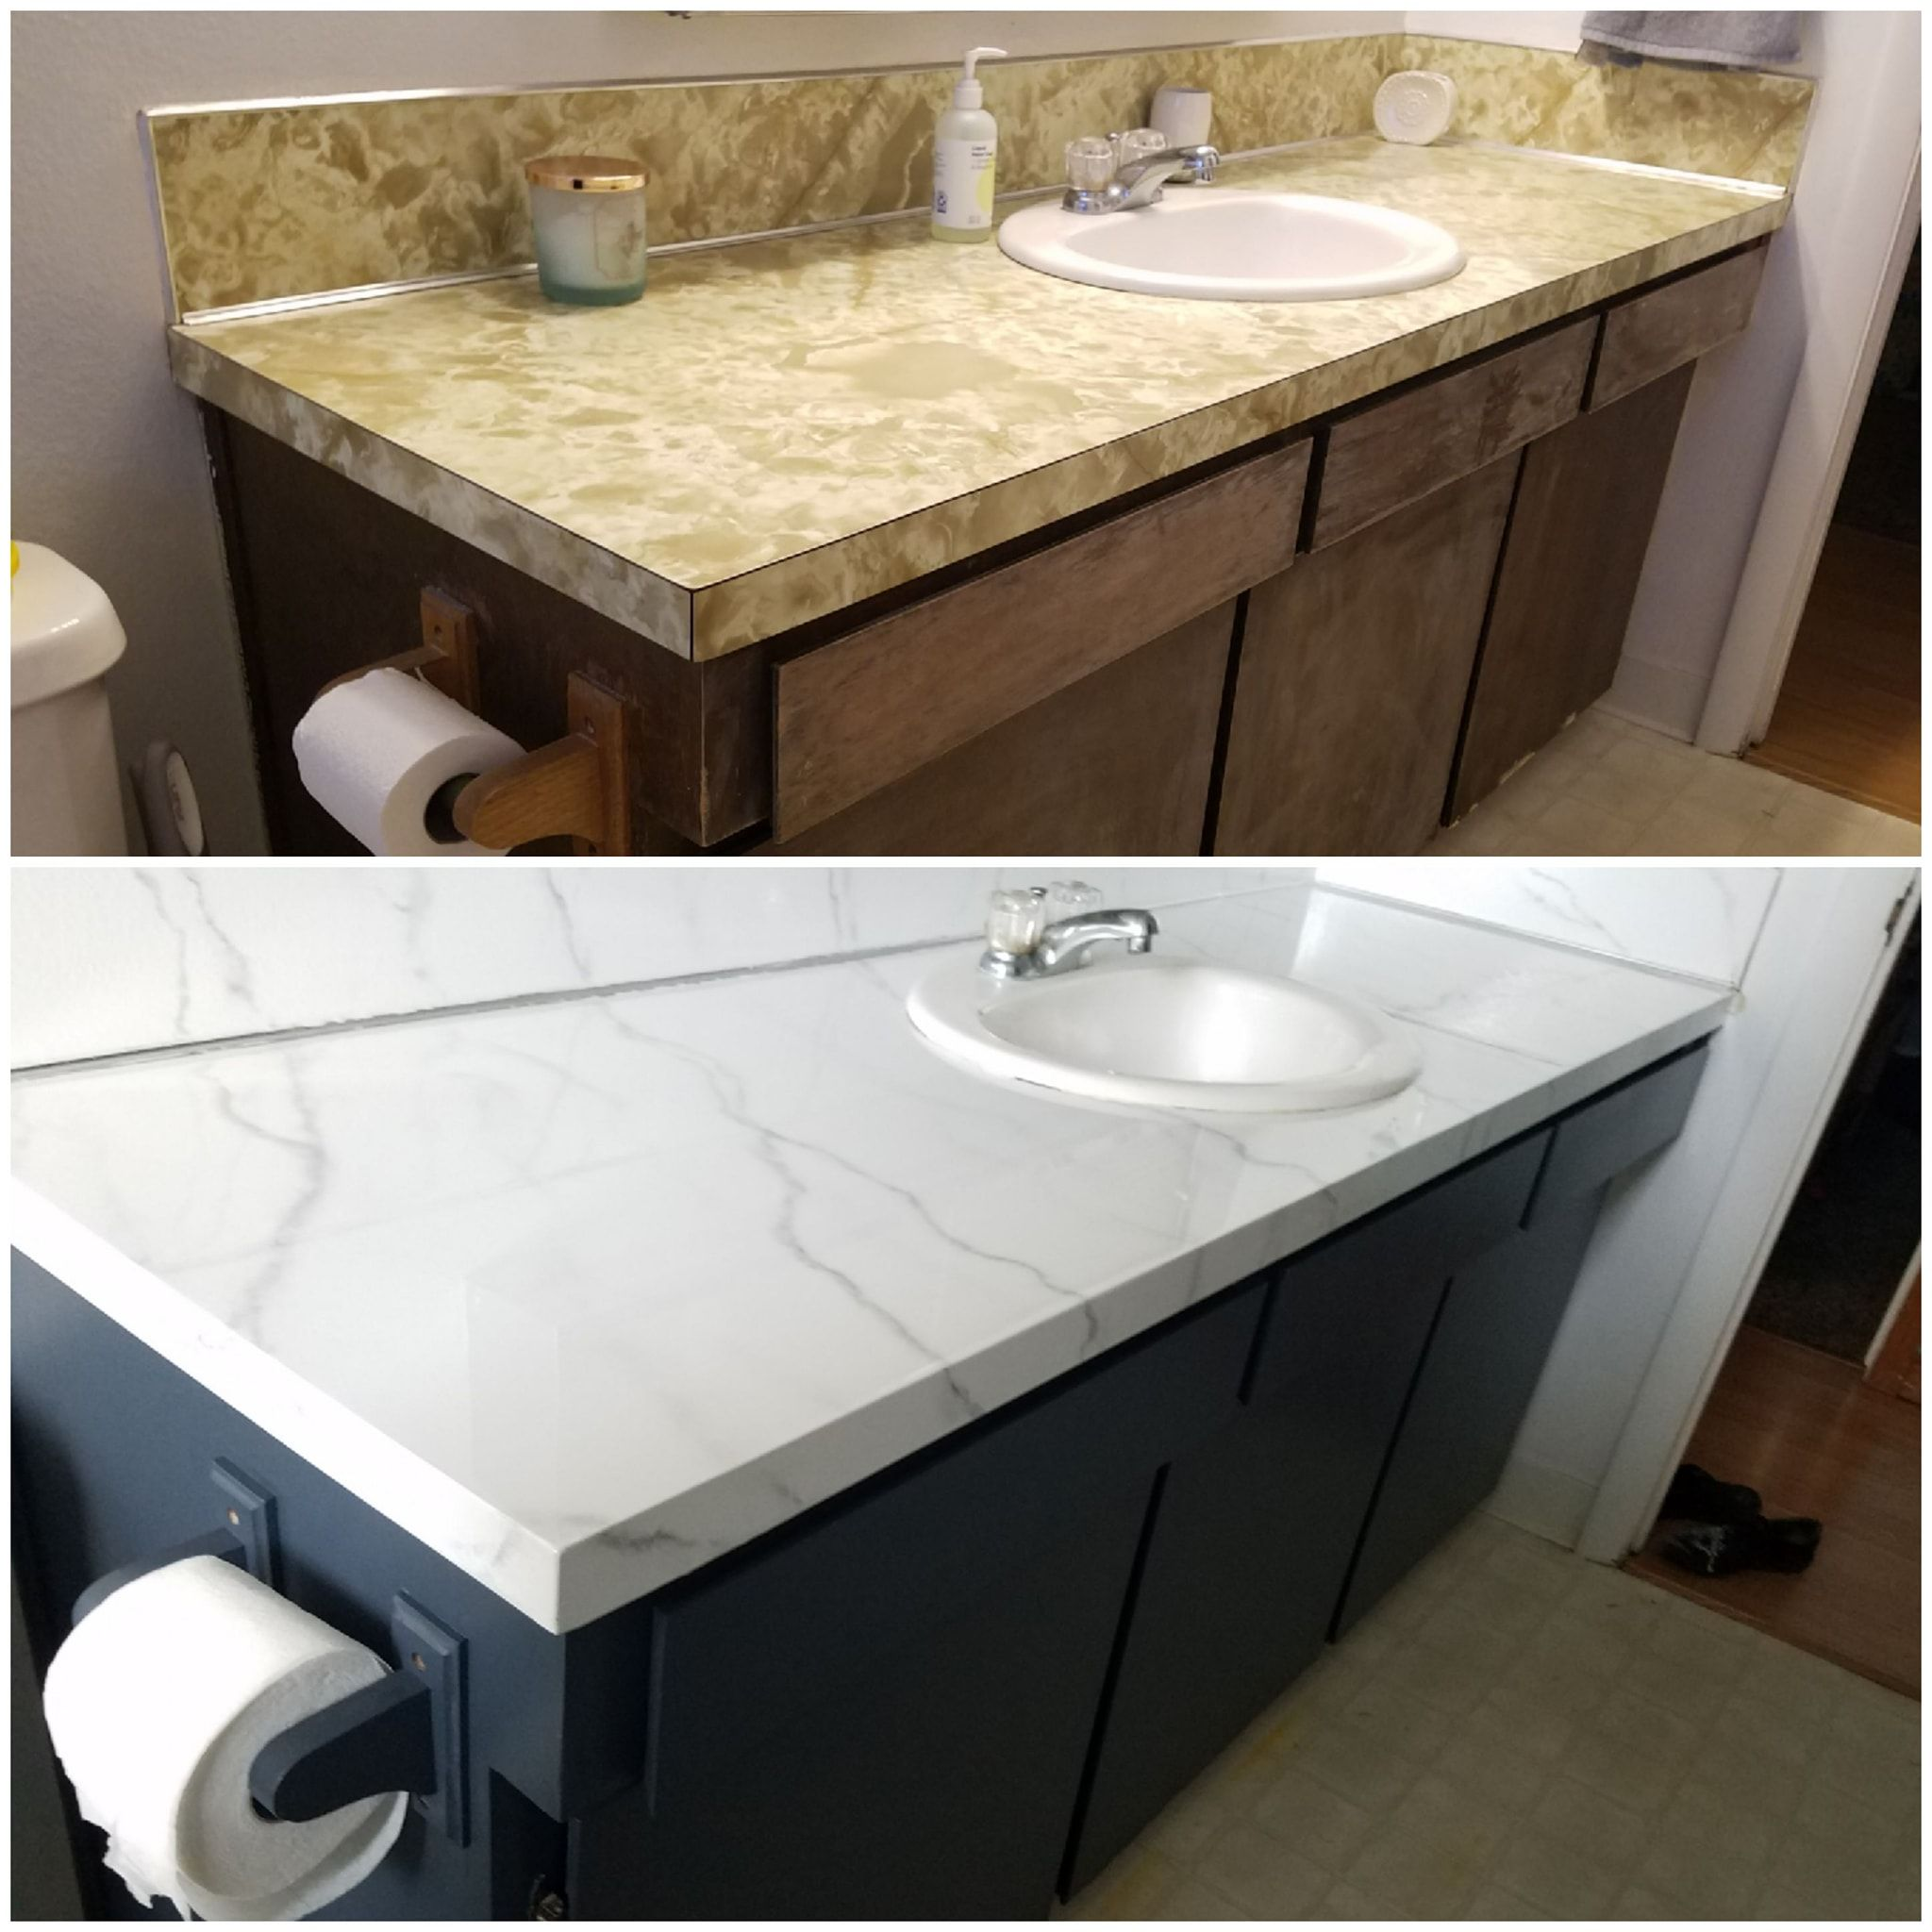 Giani Marble Countertop Paint Kit in 2020 Countertop